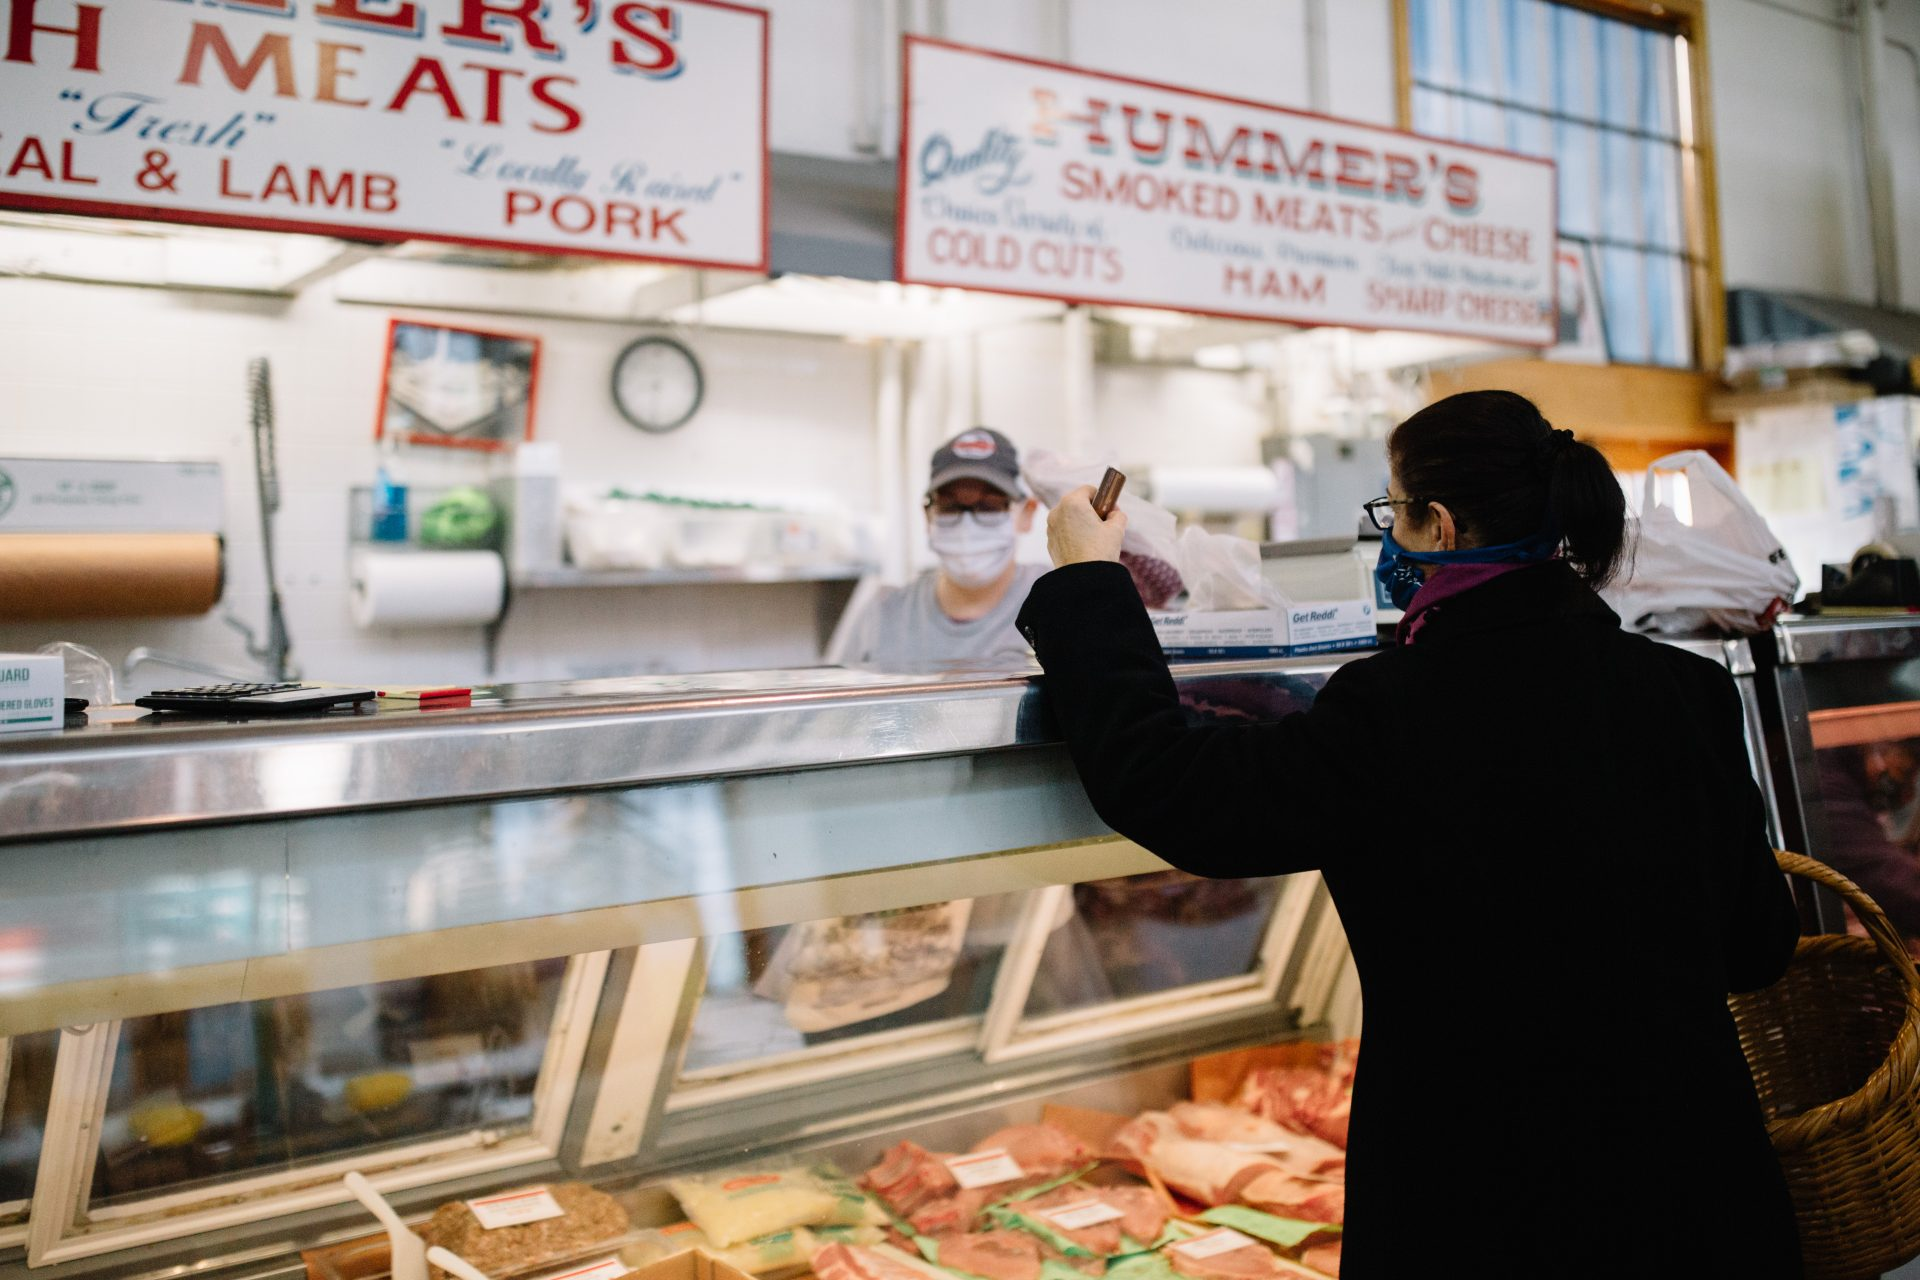 A woman purchases meat at Broad Street Market in Harrisburg on April 10, 2020. The market is much quieter since the coronavirus pandemic effectively shut down the region.